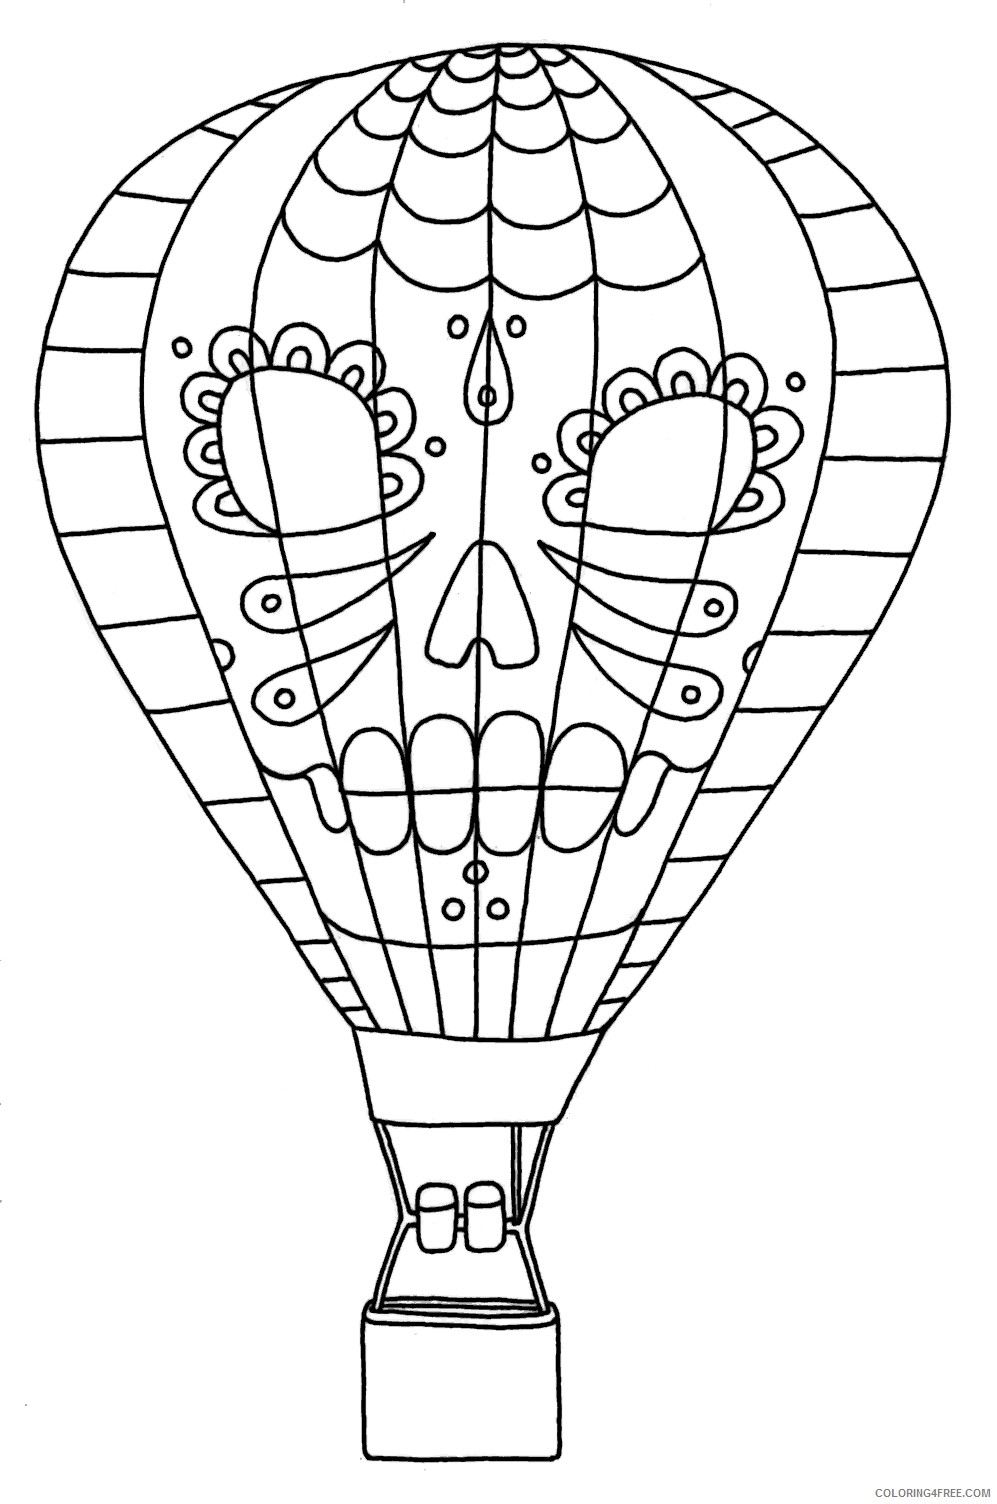 hot air balloon coloring pages with sugar skull images Coloring4free